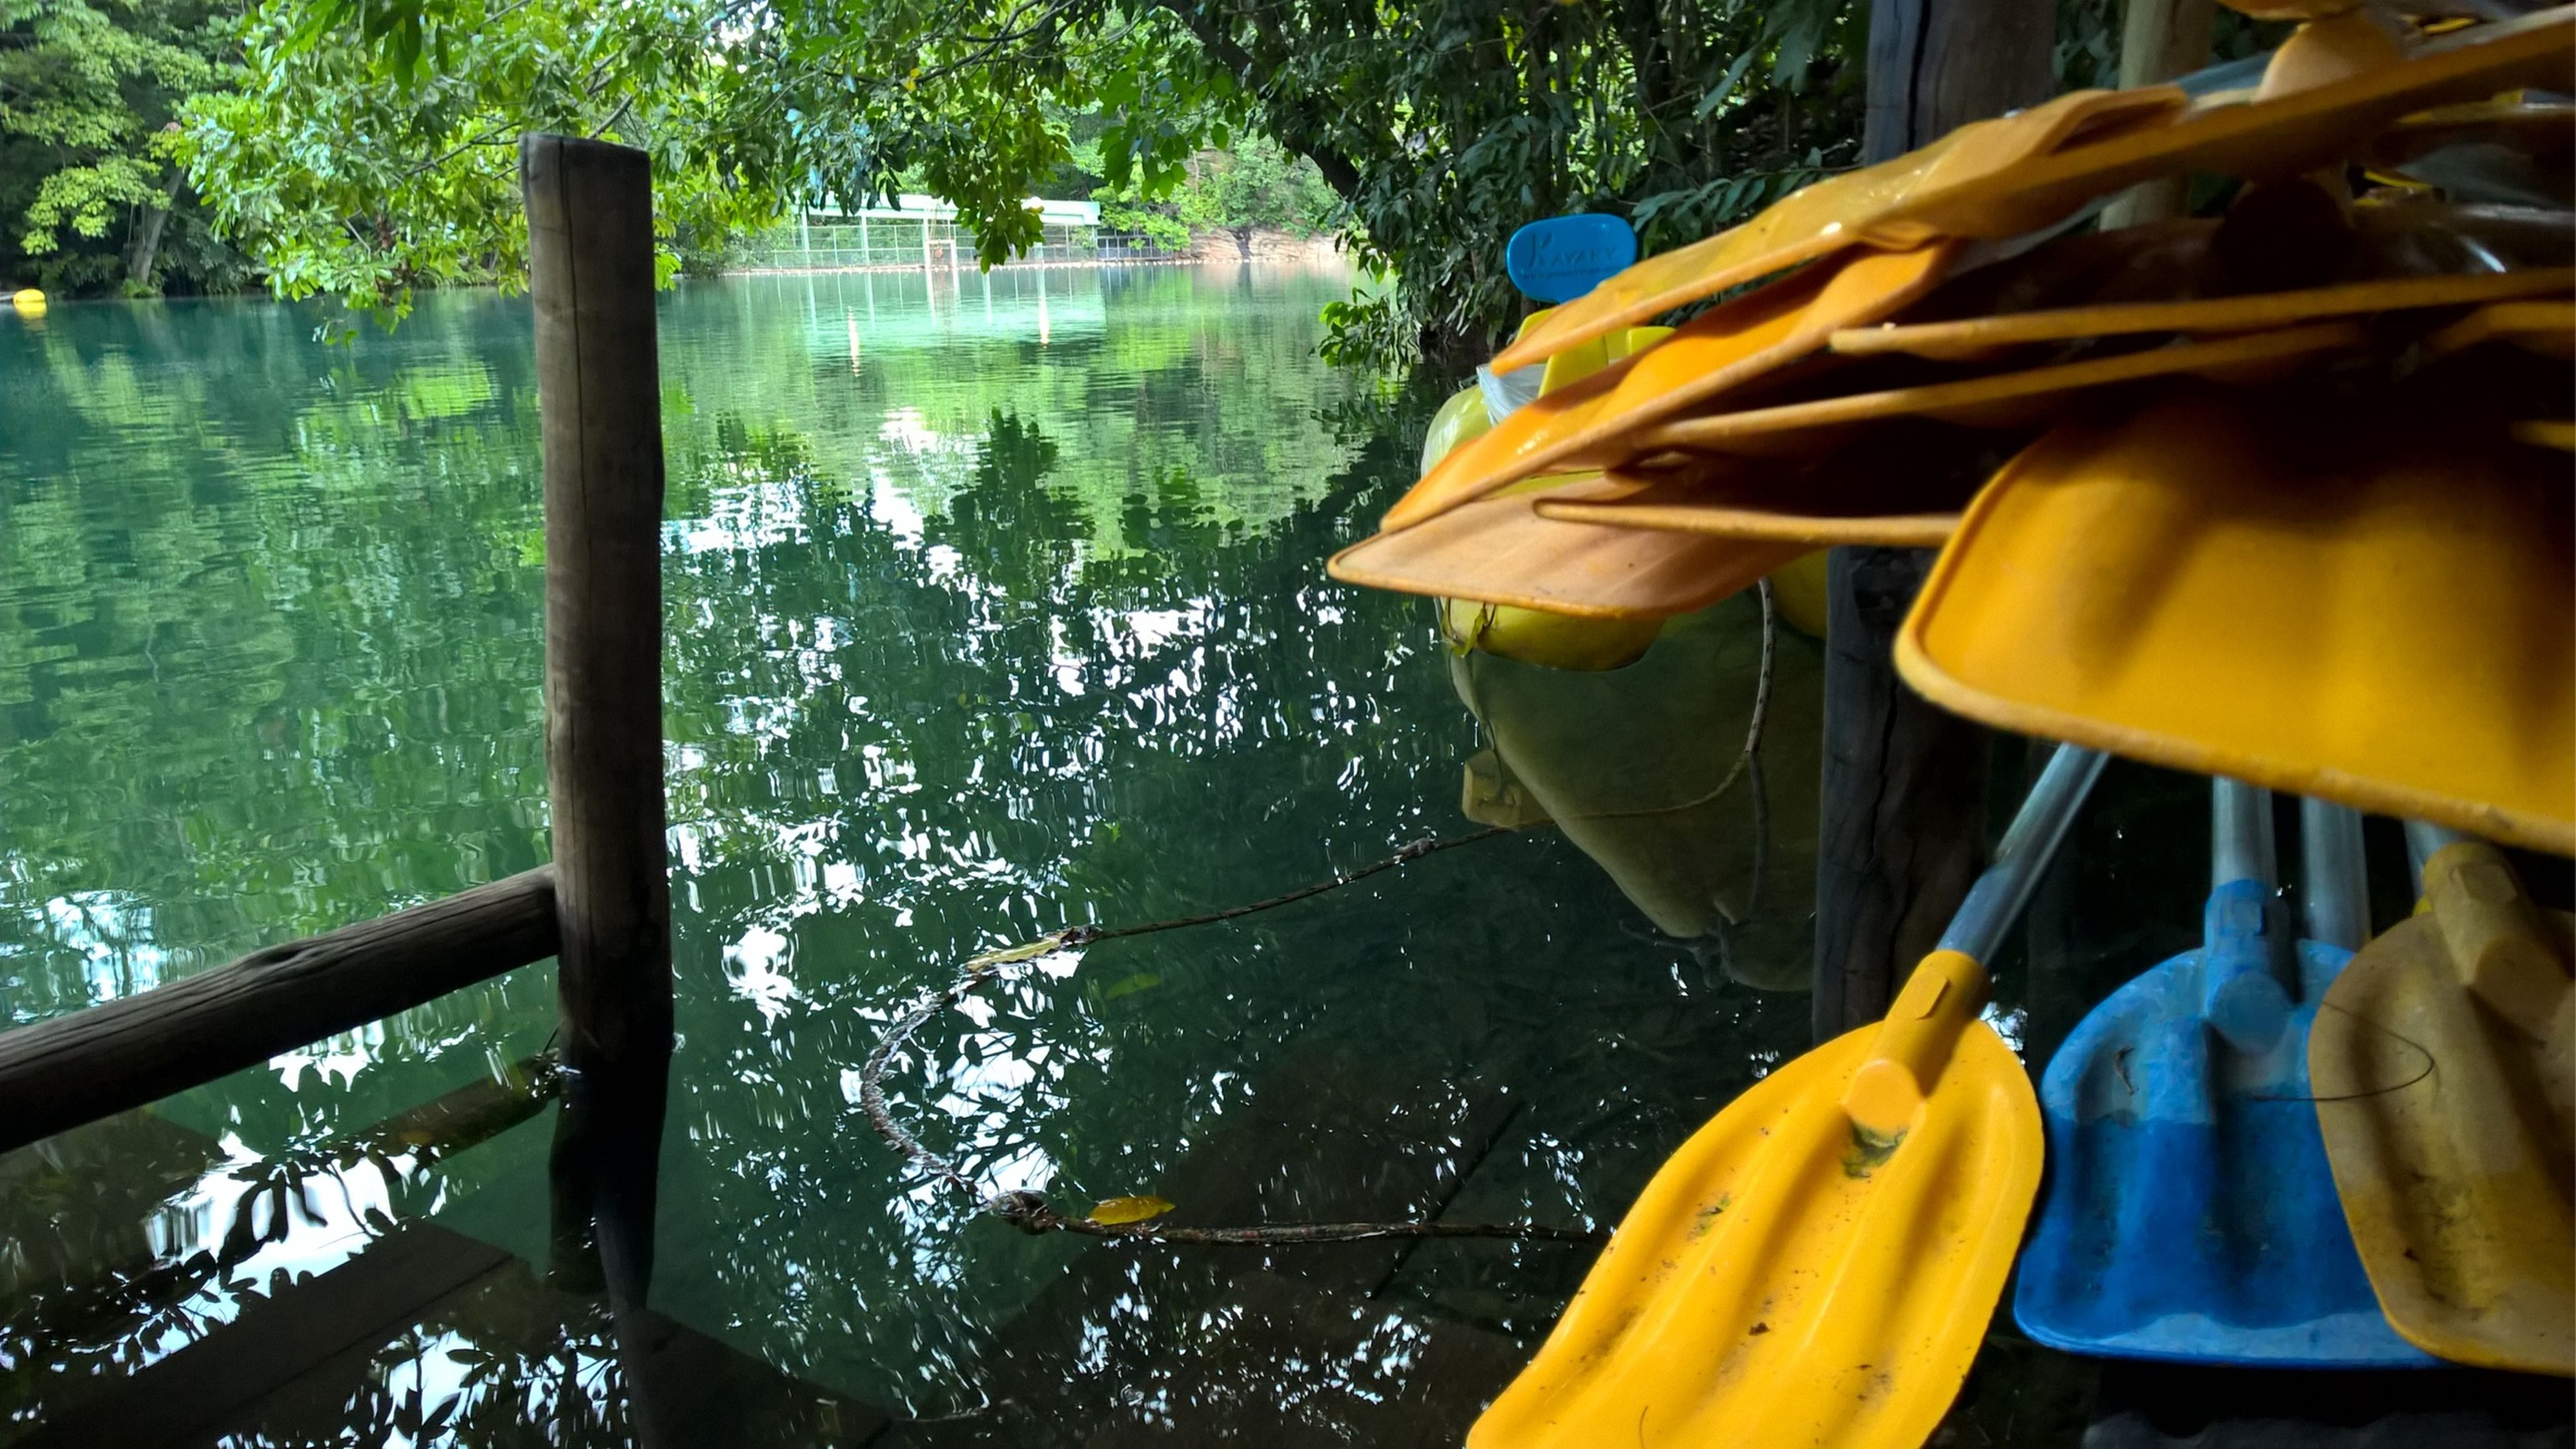 yellow, tree, water, close-up, growth, nature, day, outdoors, tranquility, beauty in nature, sunlight, park - man made space, reflection, no people, part of, plant, green color, lake, hanging, nautical vessel